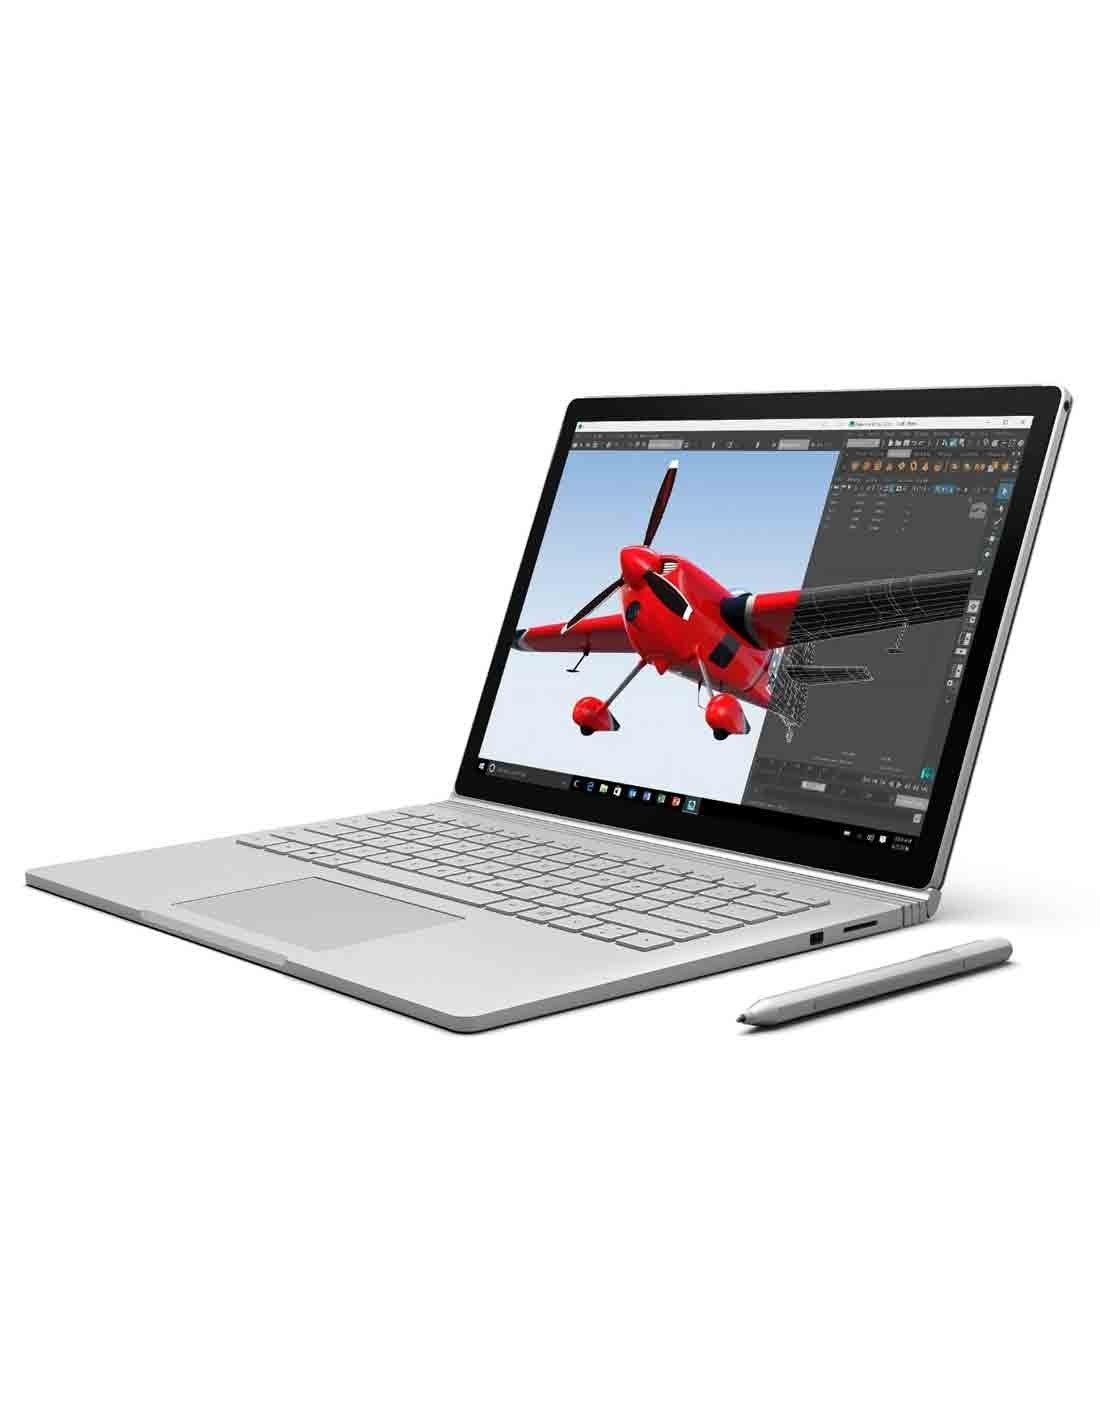 Microsoft Surface Book Intel Core i5 8GB Memory 256GB SSD Buy Online at a Cheap Price